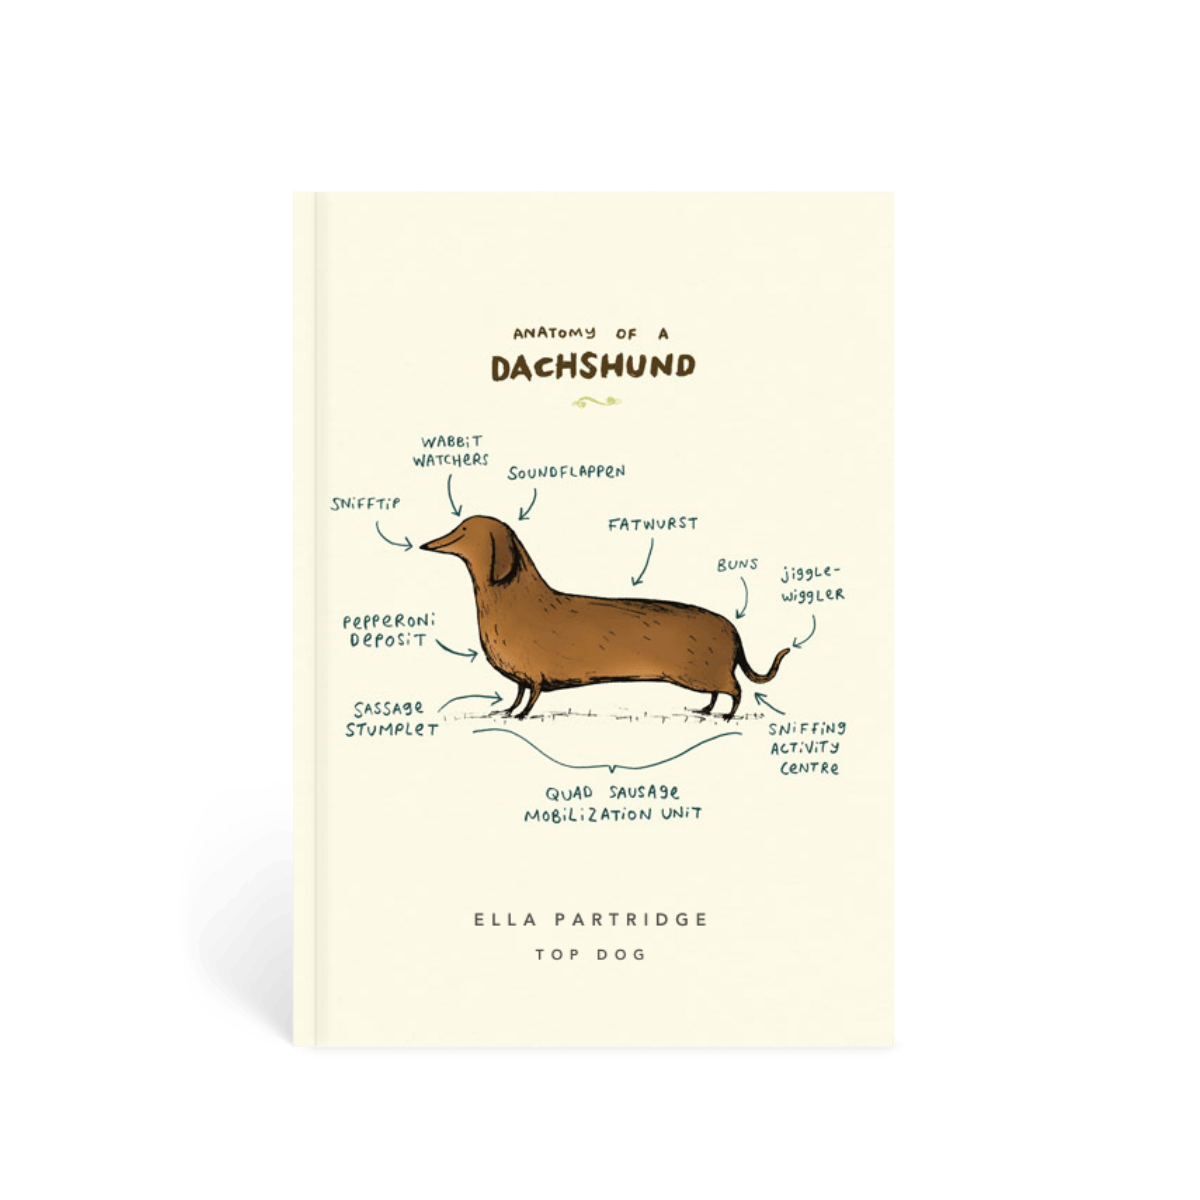 Https%3a%2f%2fwww.papier.com%2fproduct image%2f57206%2f25%2fanatomy of a dachshund 13741 front 1542370522.png?ixlib=rb 1.1